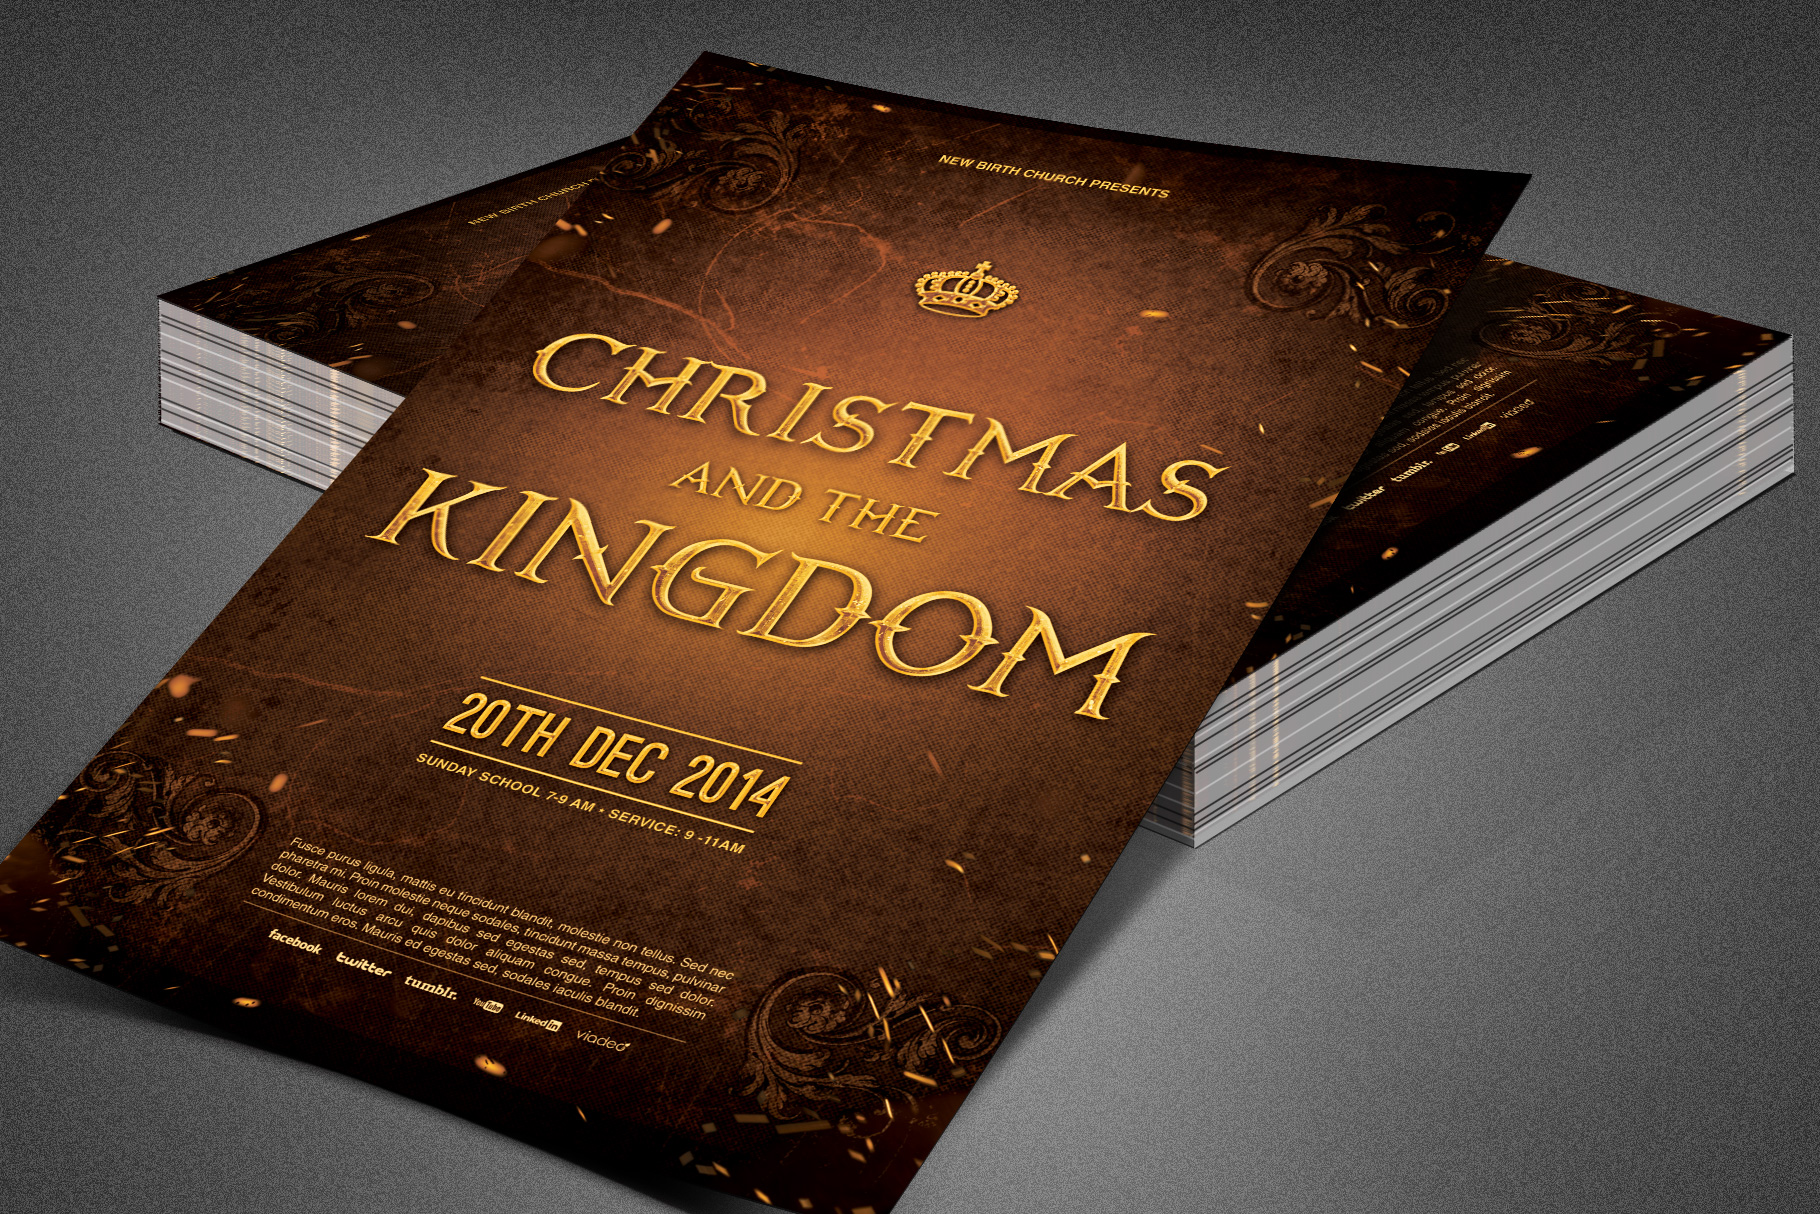 Christmas and the Kingdom Flyer example image 6